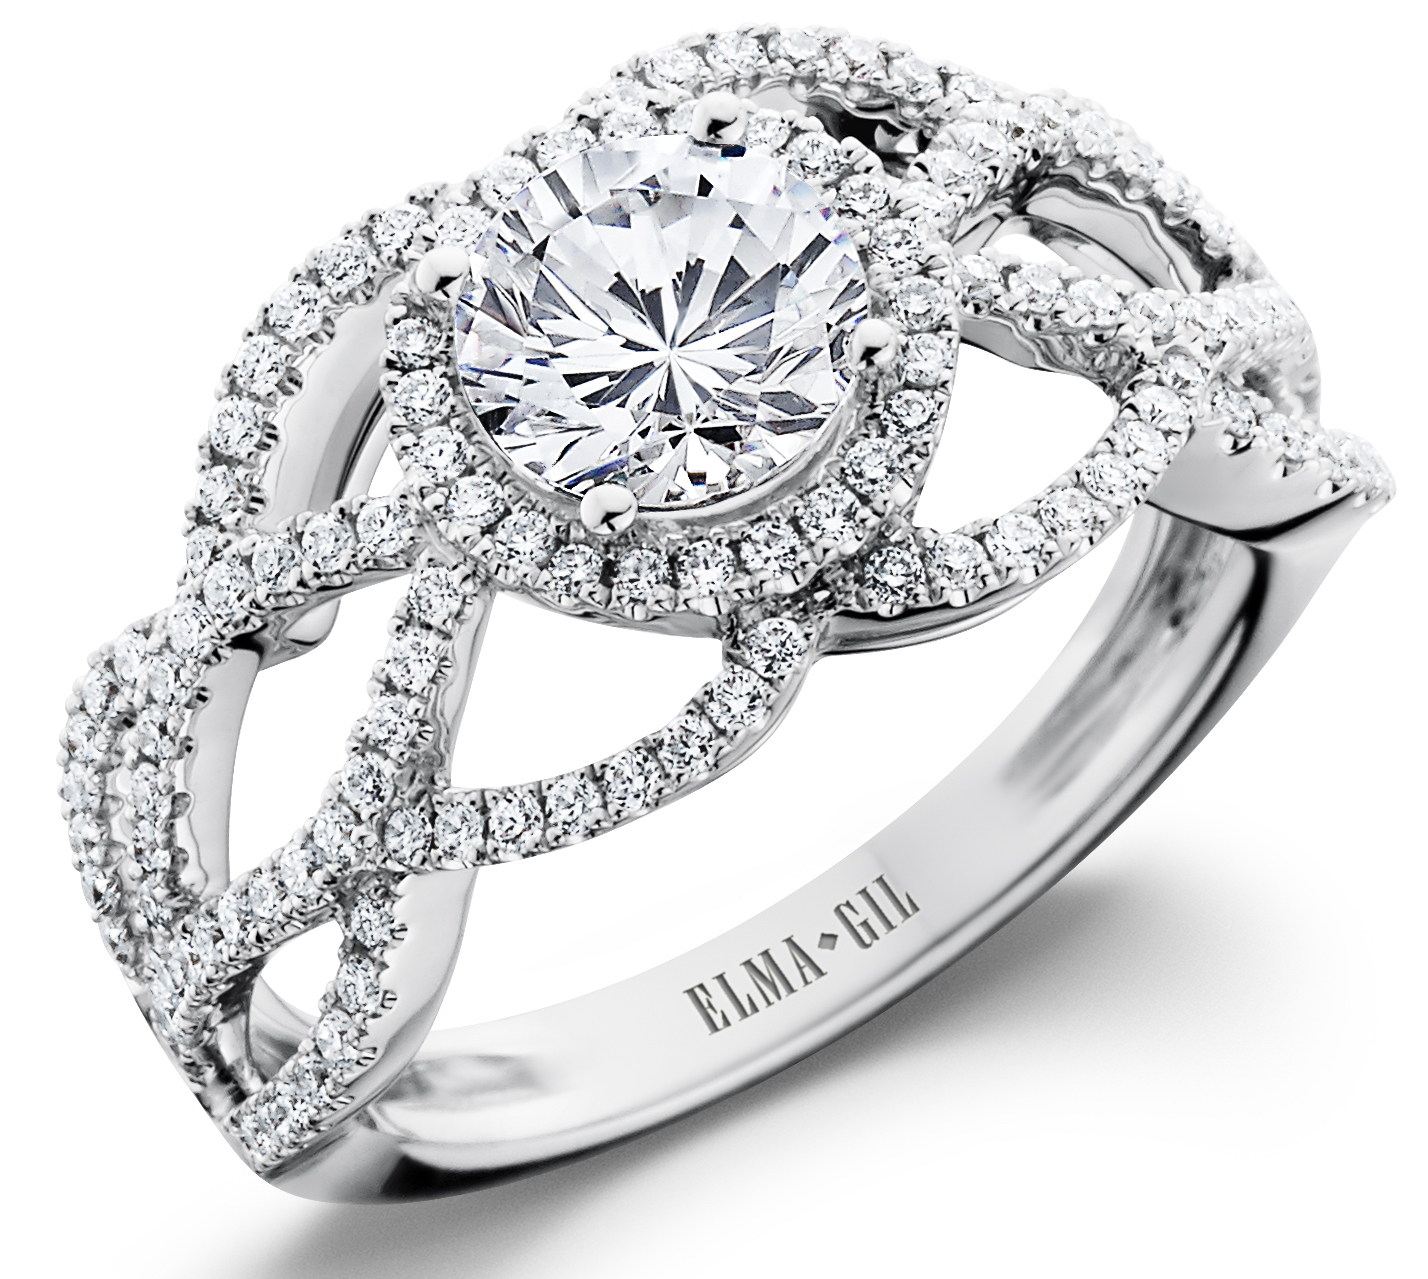 Elma Gil diamond engagement ring | JCK On Your Market